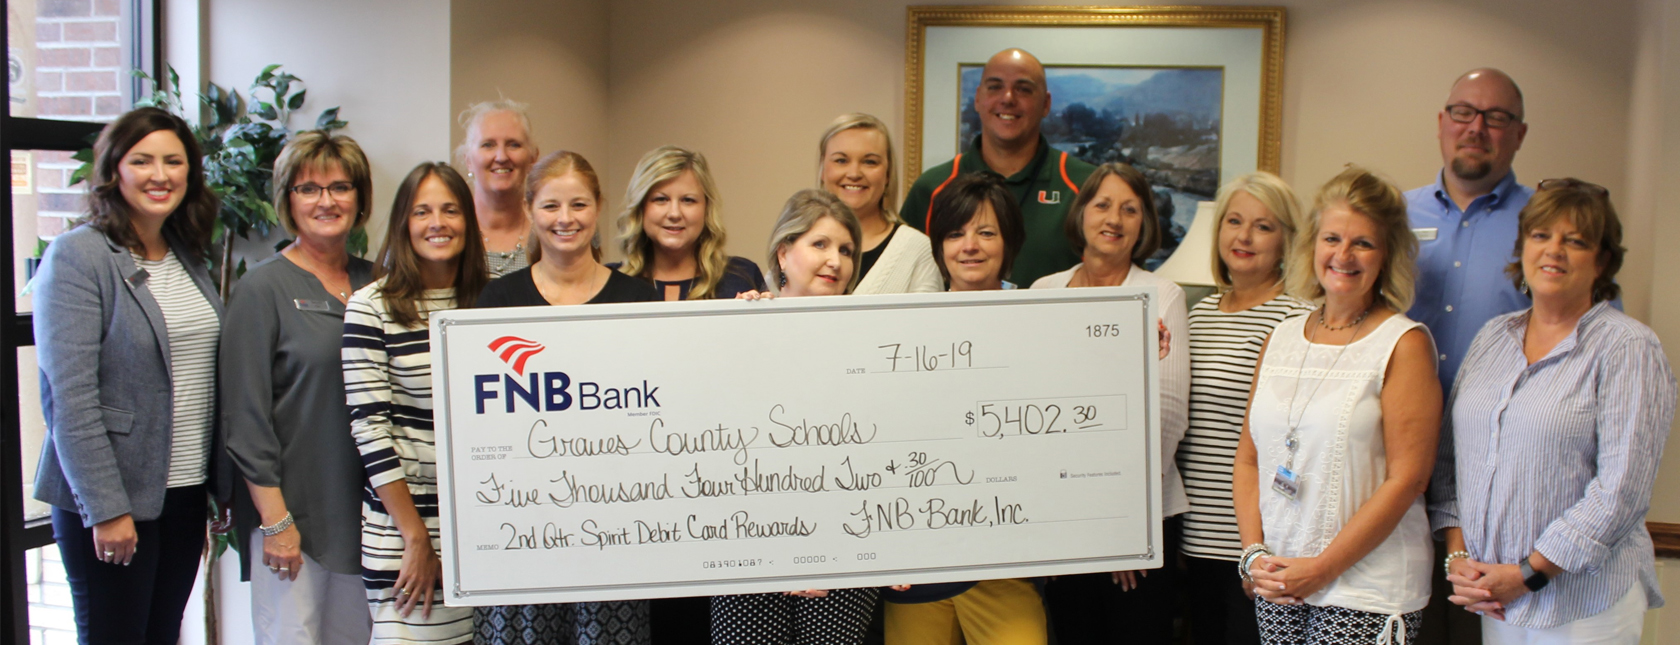 FNB Donates over $20500 to local schools through spirit debit card program